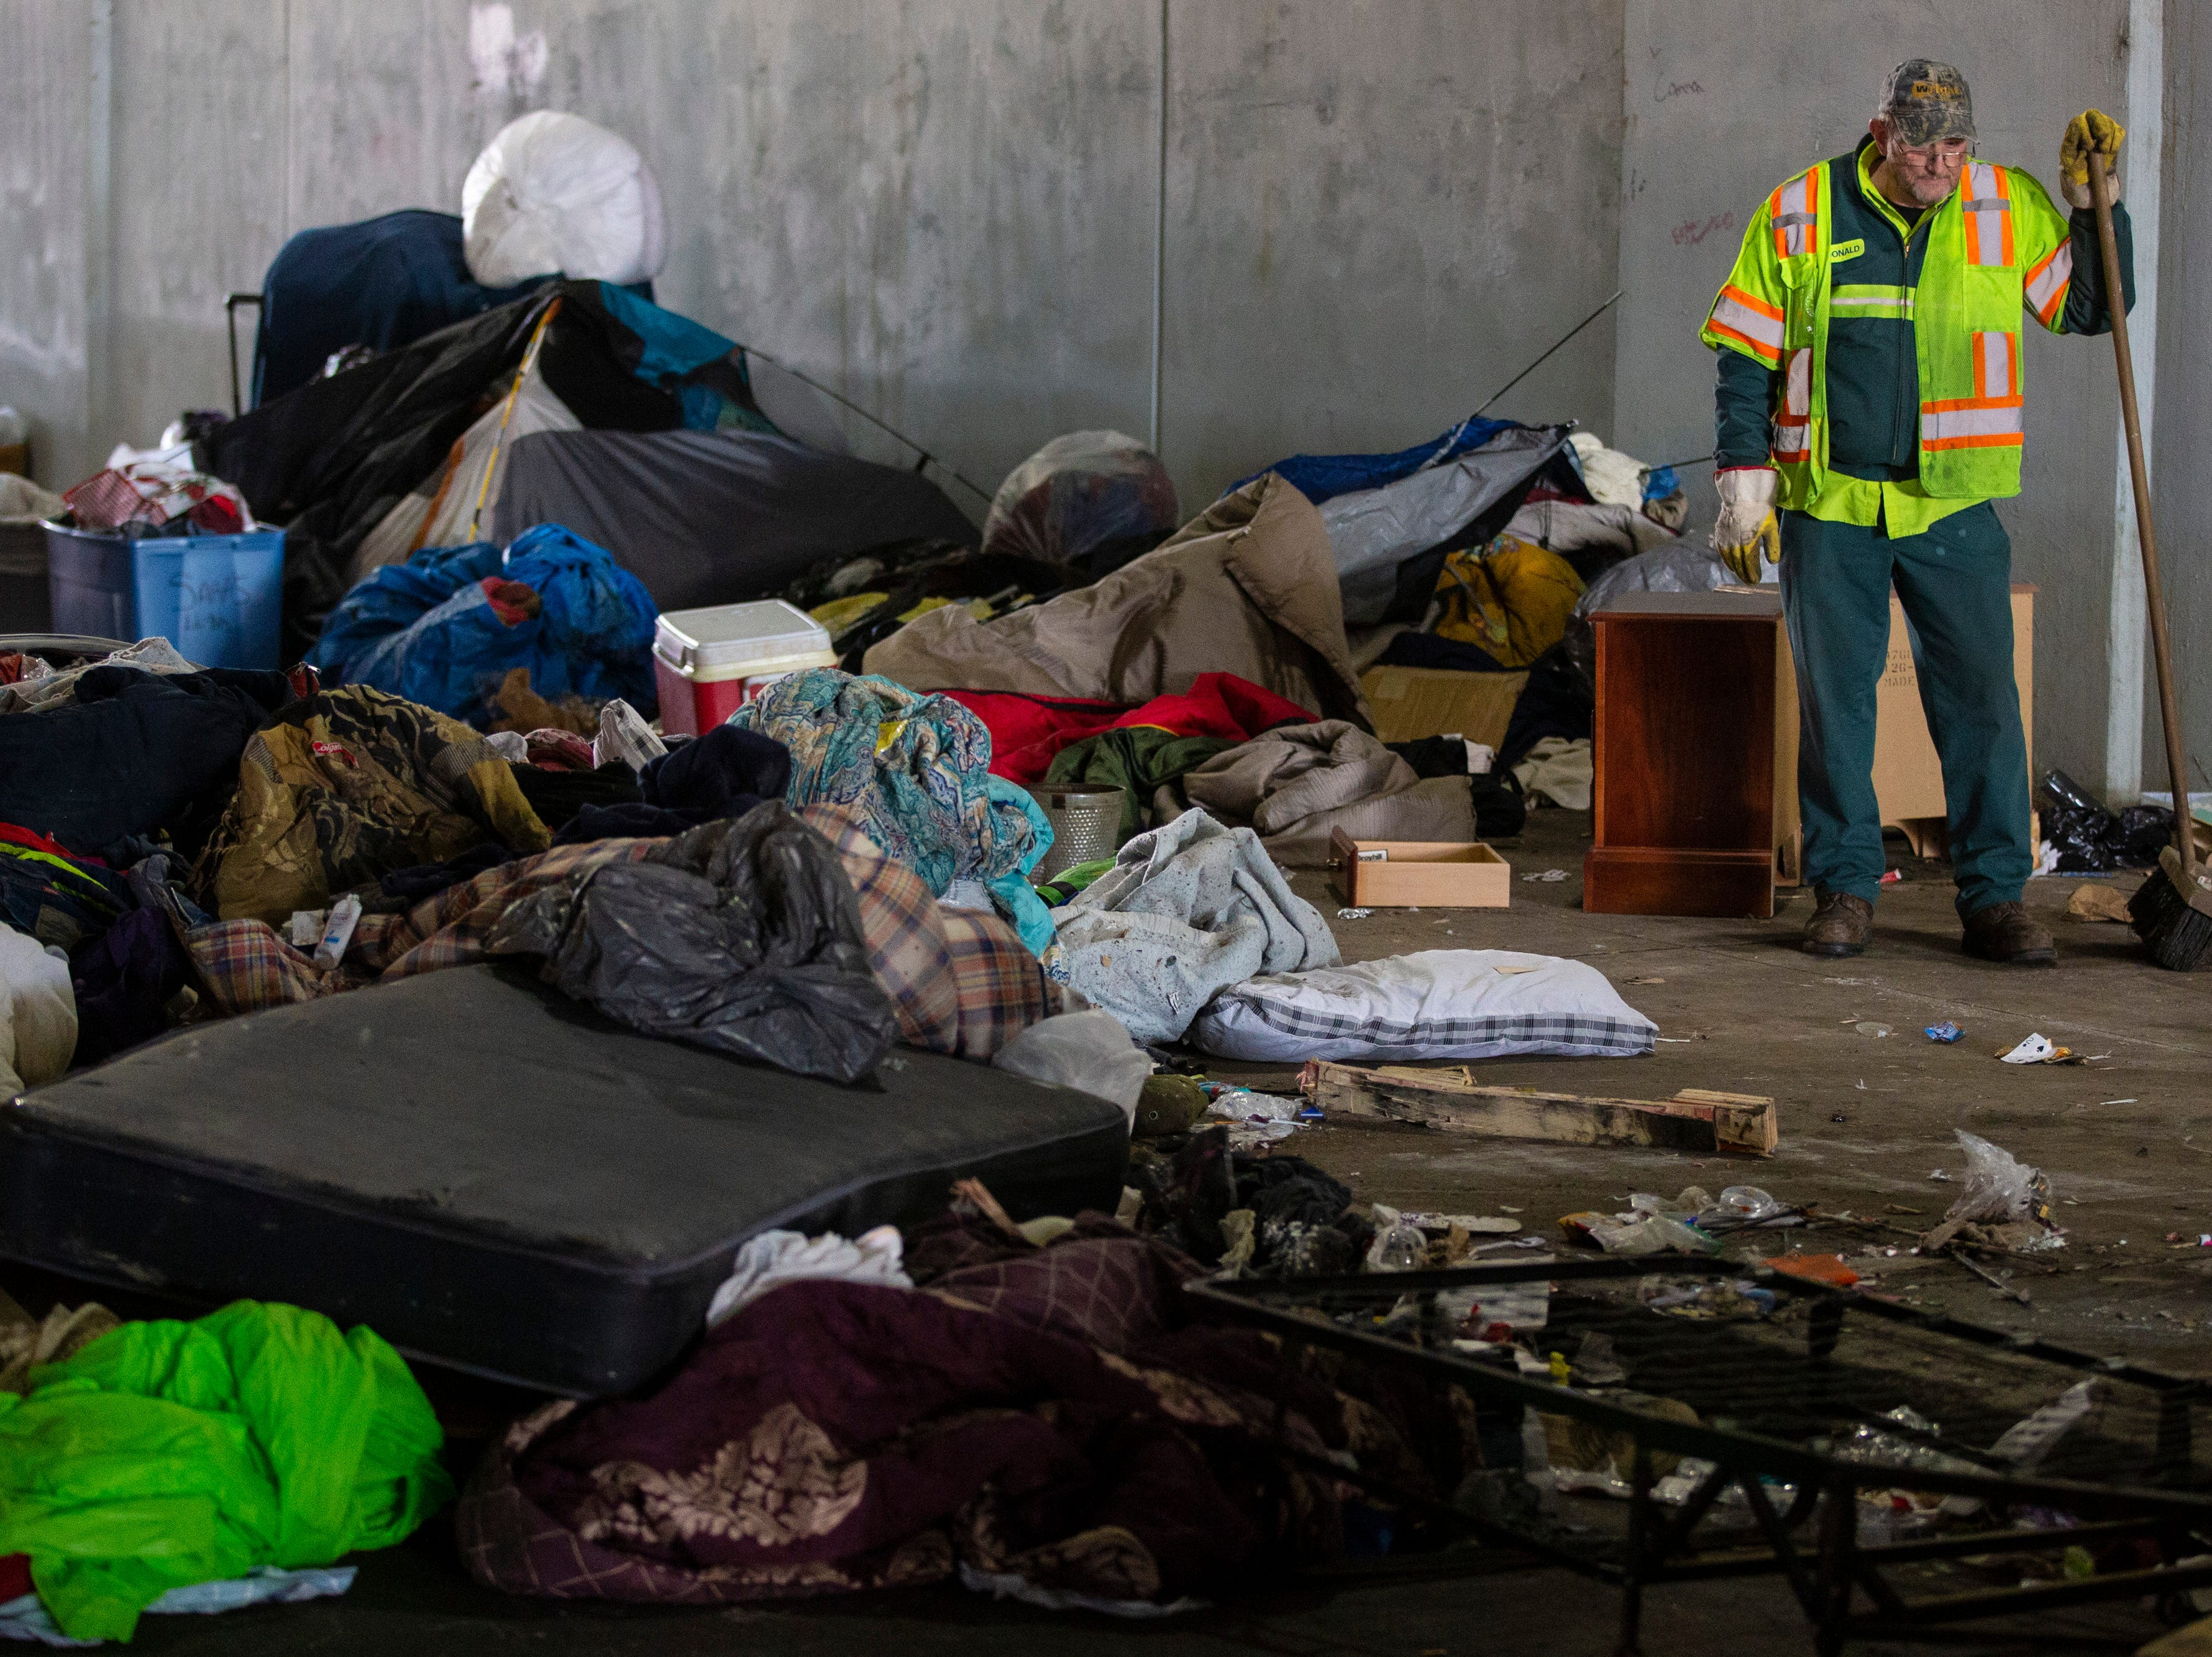 Louisville city crews cleaned out the homeless camp at the intersection of Jackson and Jefferson streets Monday morning. April 1, 2019